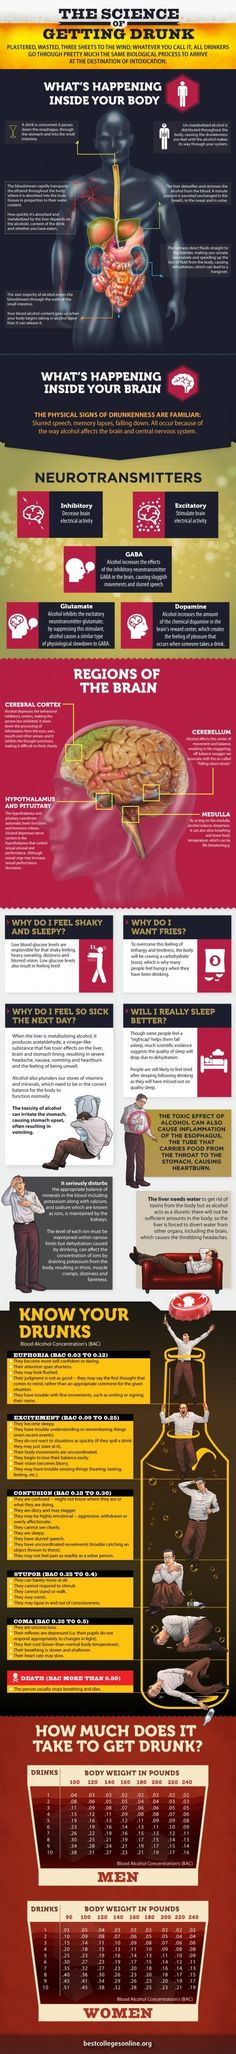 How Drinking Alcohol Affects Our Bodies [Infographic]